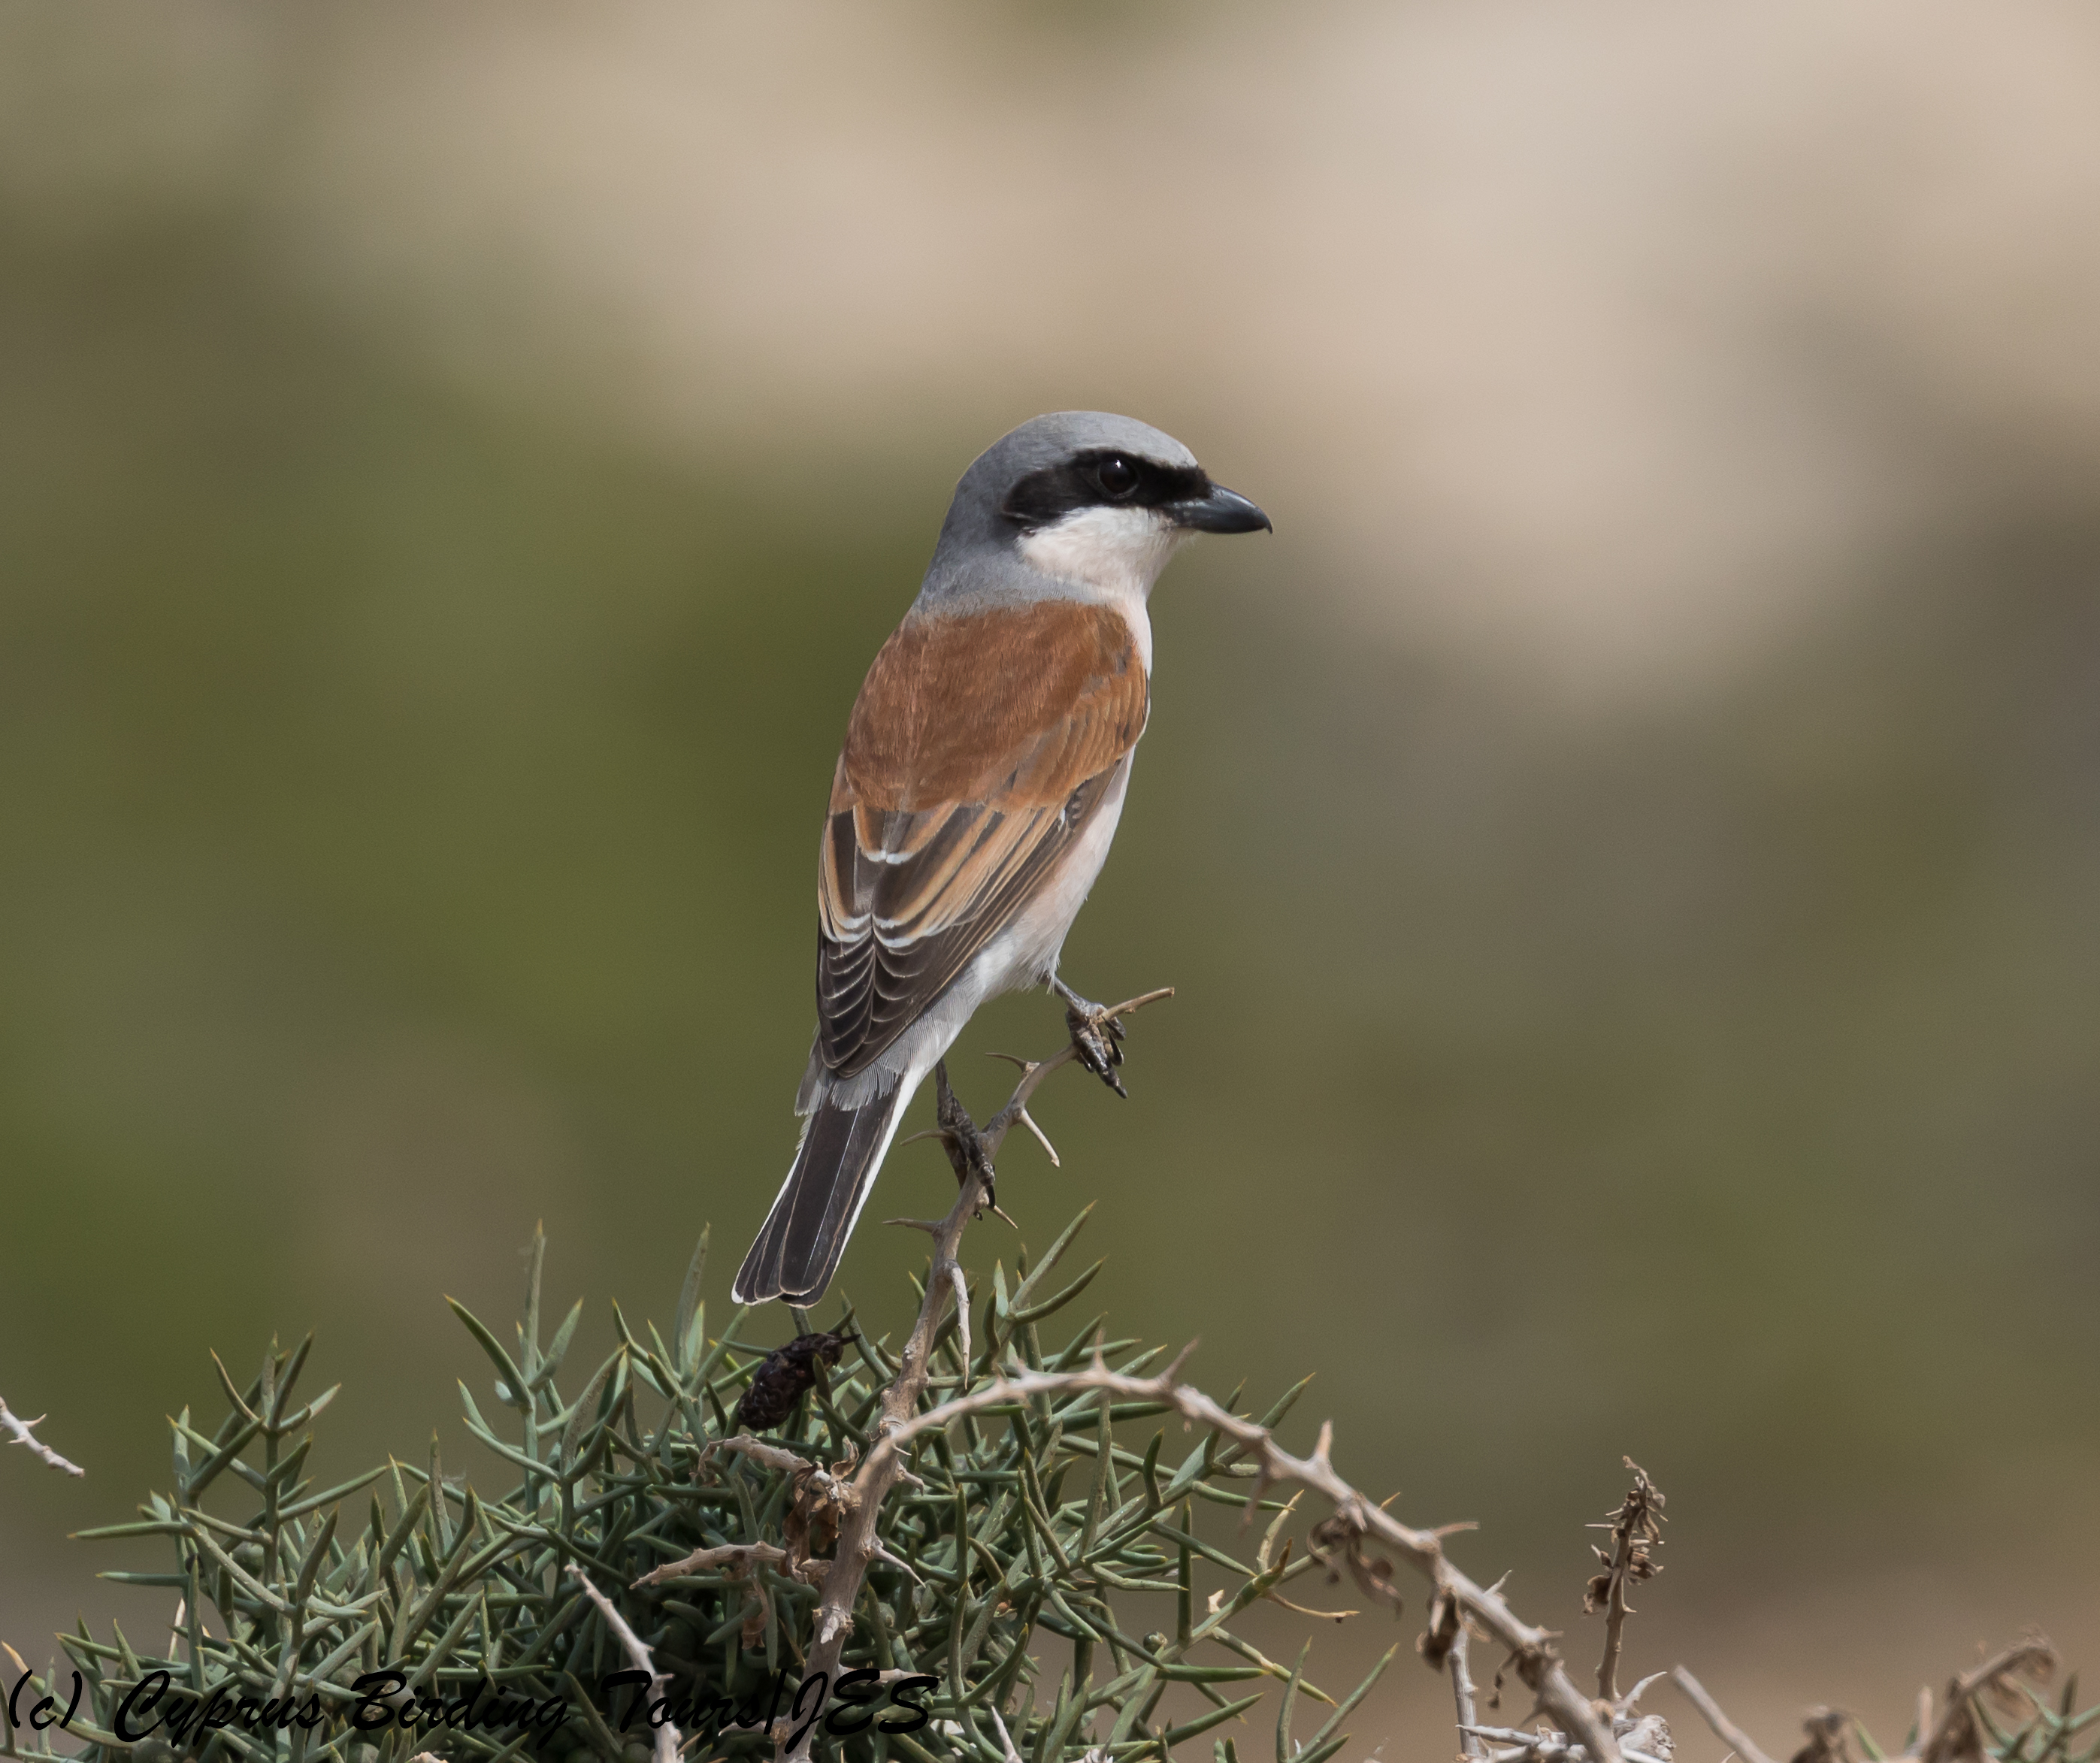 Red-backed Shrike, Cape Greco 26th April 2018 (c) Cyprus Birding Tours